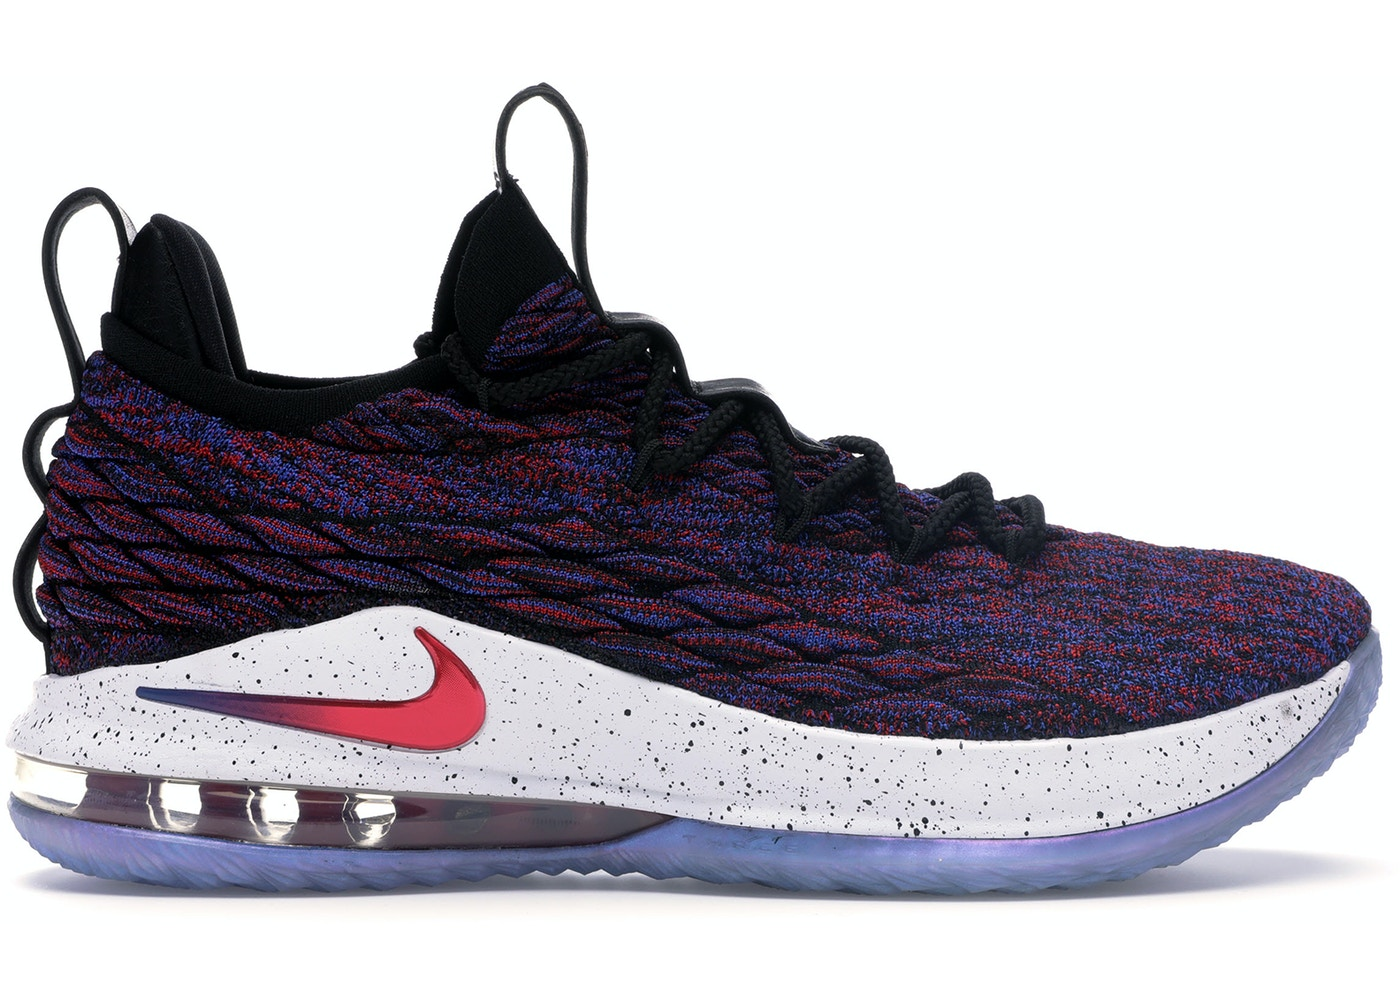 official photos daf3c 736f8 LeBron 15 Low Supernova